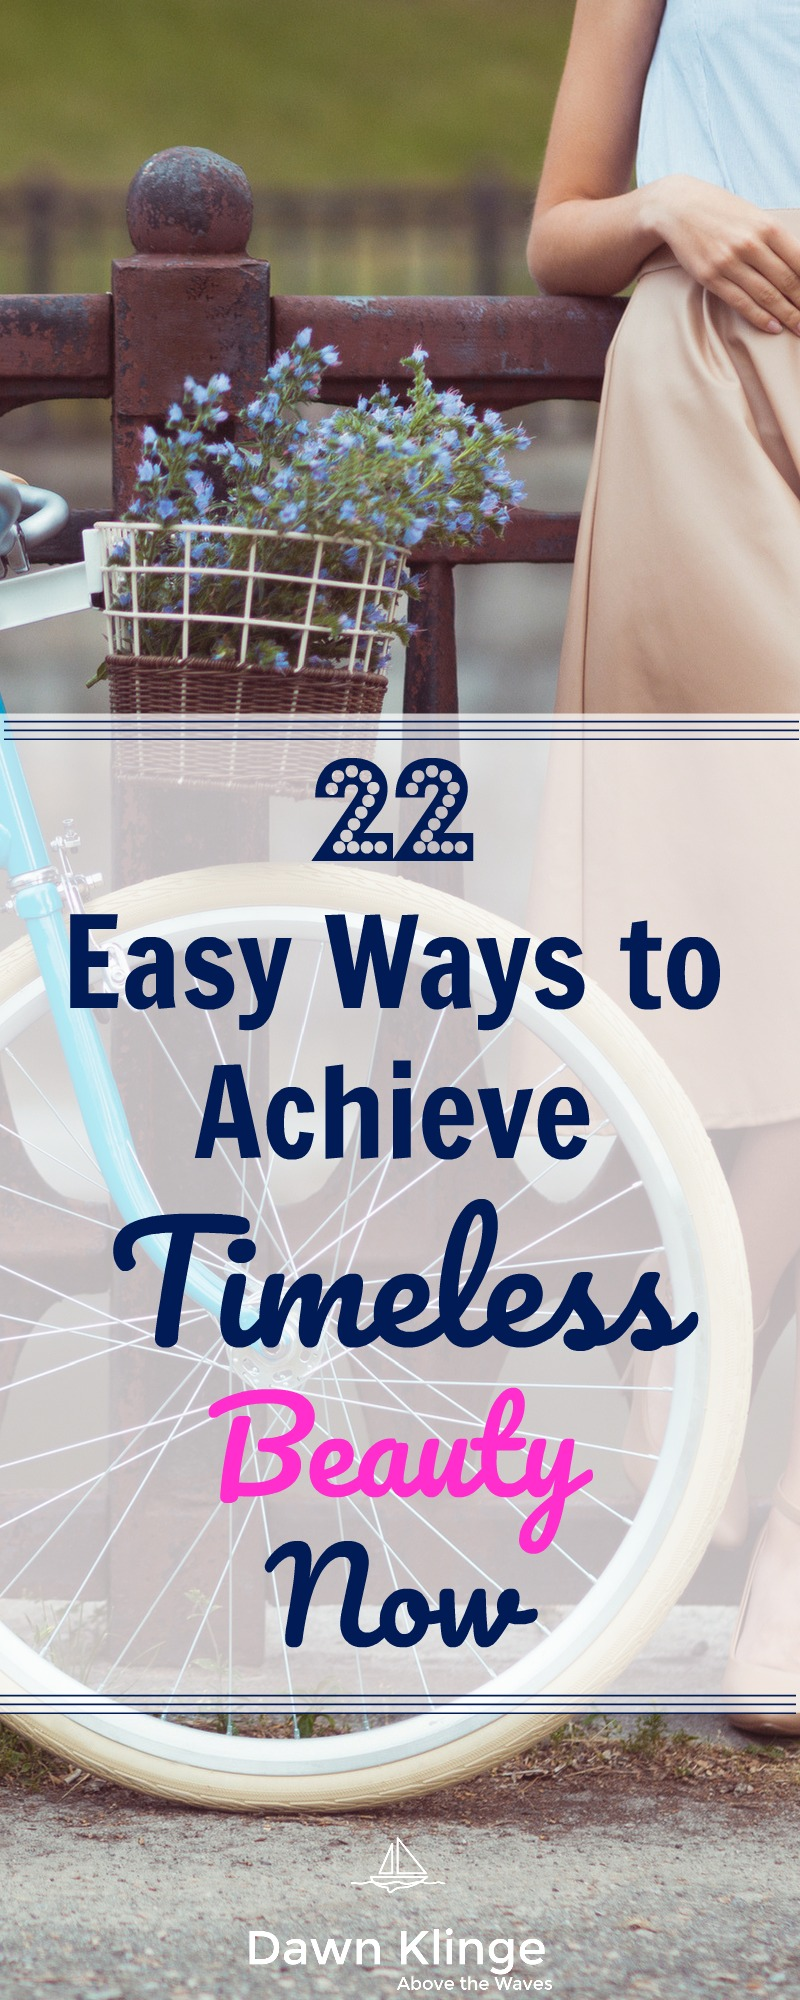 22 Easy Easy Ways to Achieve Timeless Beauty Now I beauty tips I skincare tips I lifestyle and beauty advice I Rodan +Fields I Dawn Klinge II #beautytips #classicbeauty #timelessbeauty